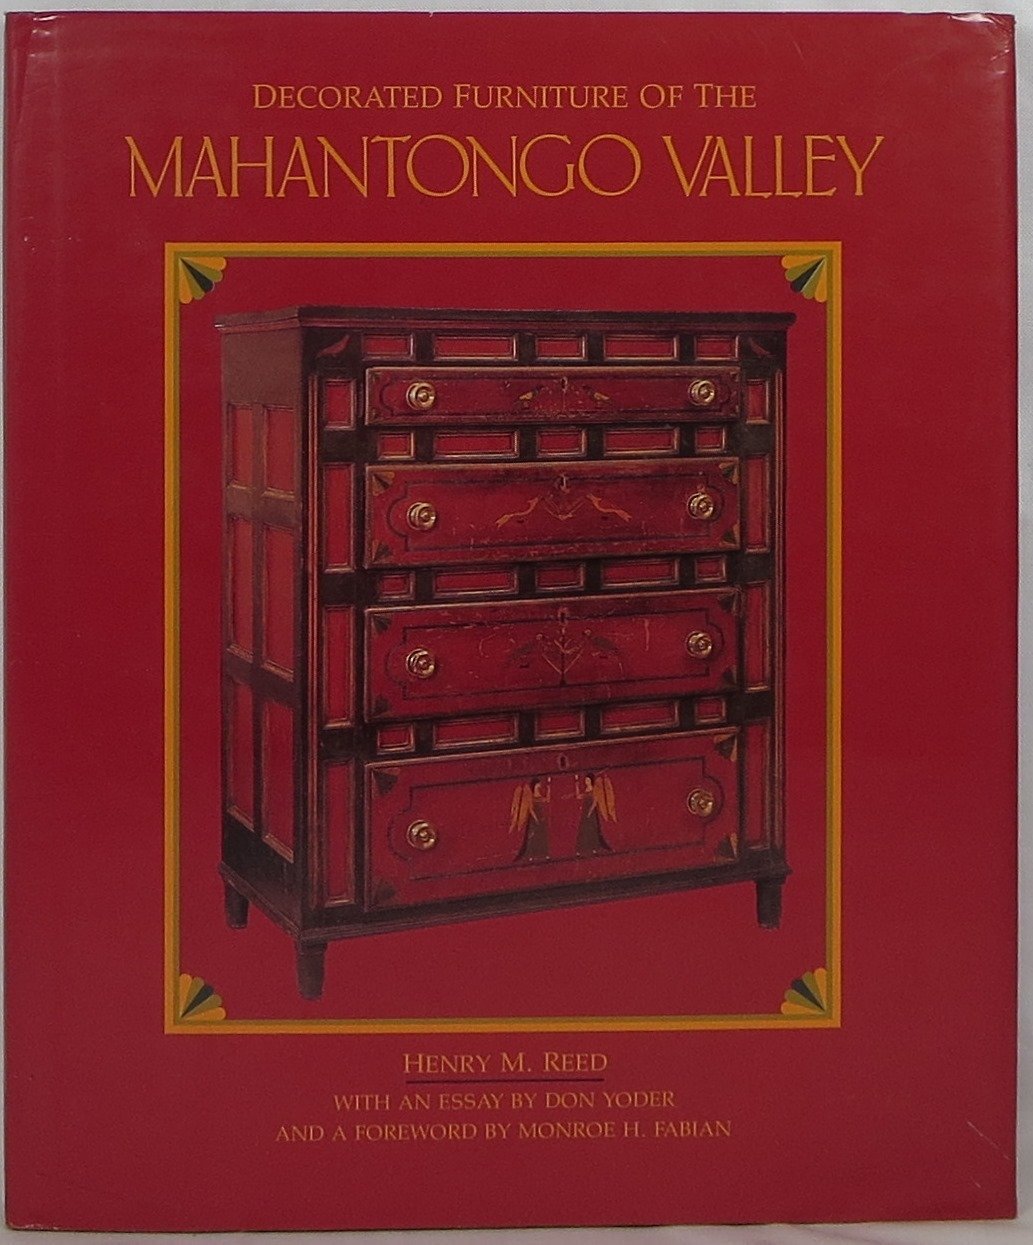 Decorated Furniture Of The Mahantongo Valley: Henry M. Reed, Don Yoder,  Monroe H. Fabian: 9780812280852: Amazon.com: Books